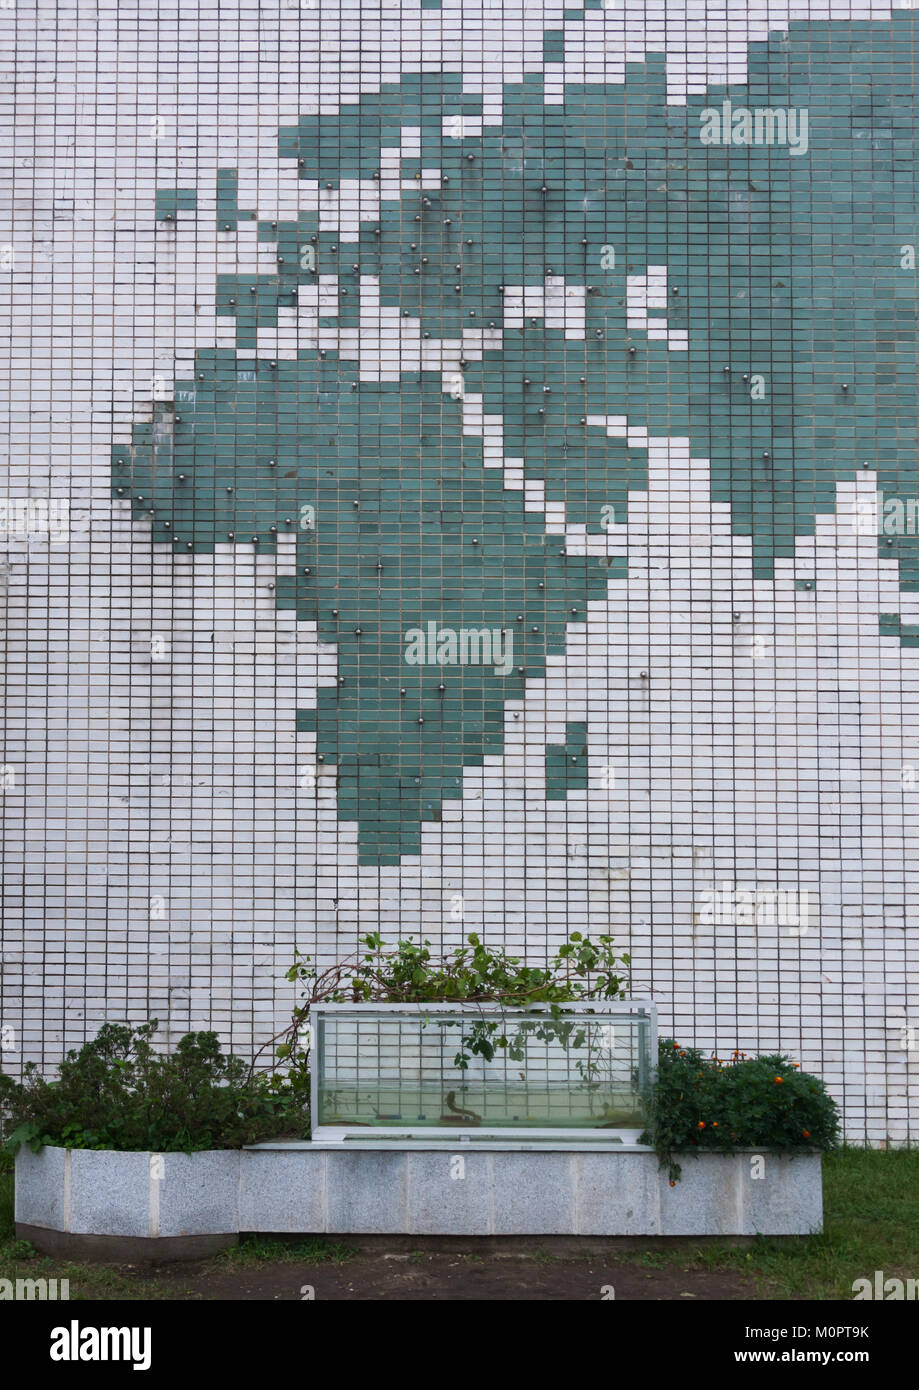 Mosaic map of the world in Songdowon international children's camp, Kangwon Province, Wonsan, North Korea Stock Photo